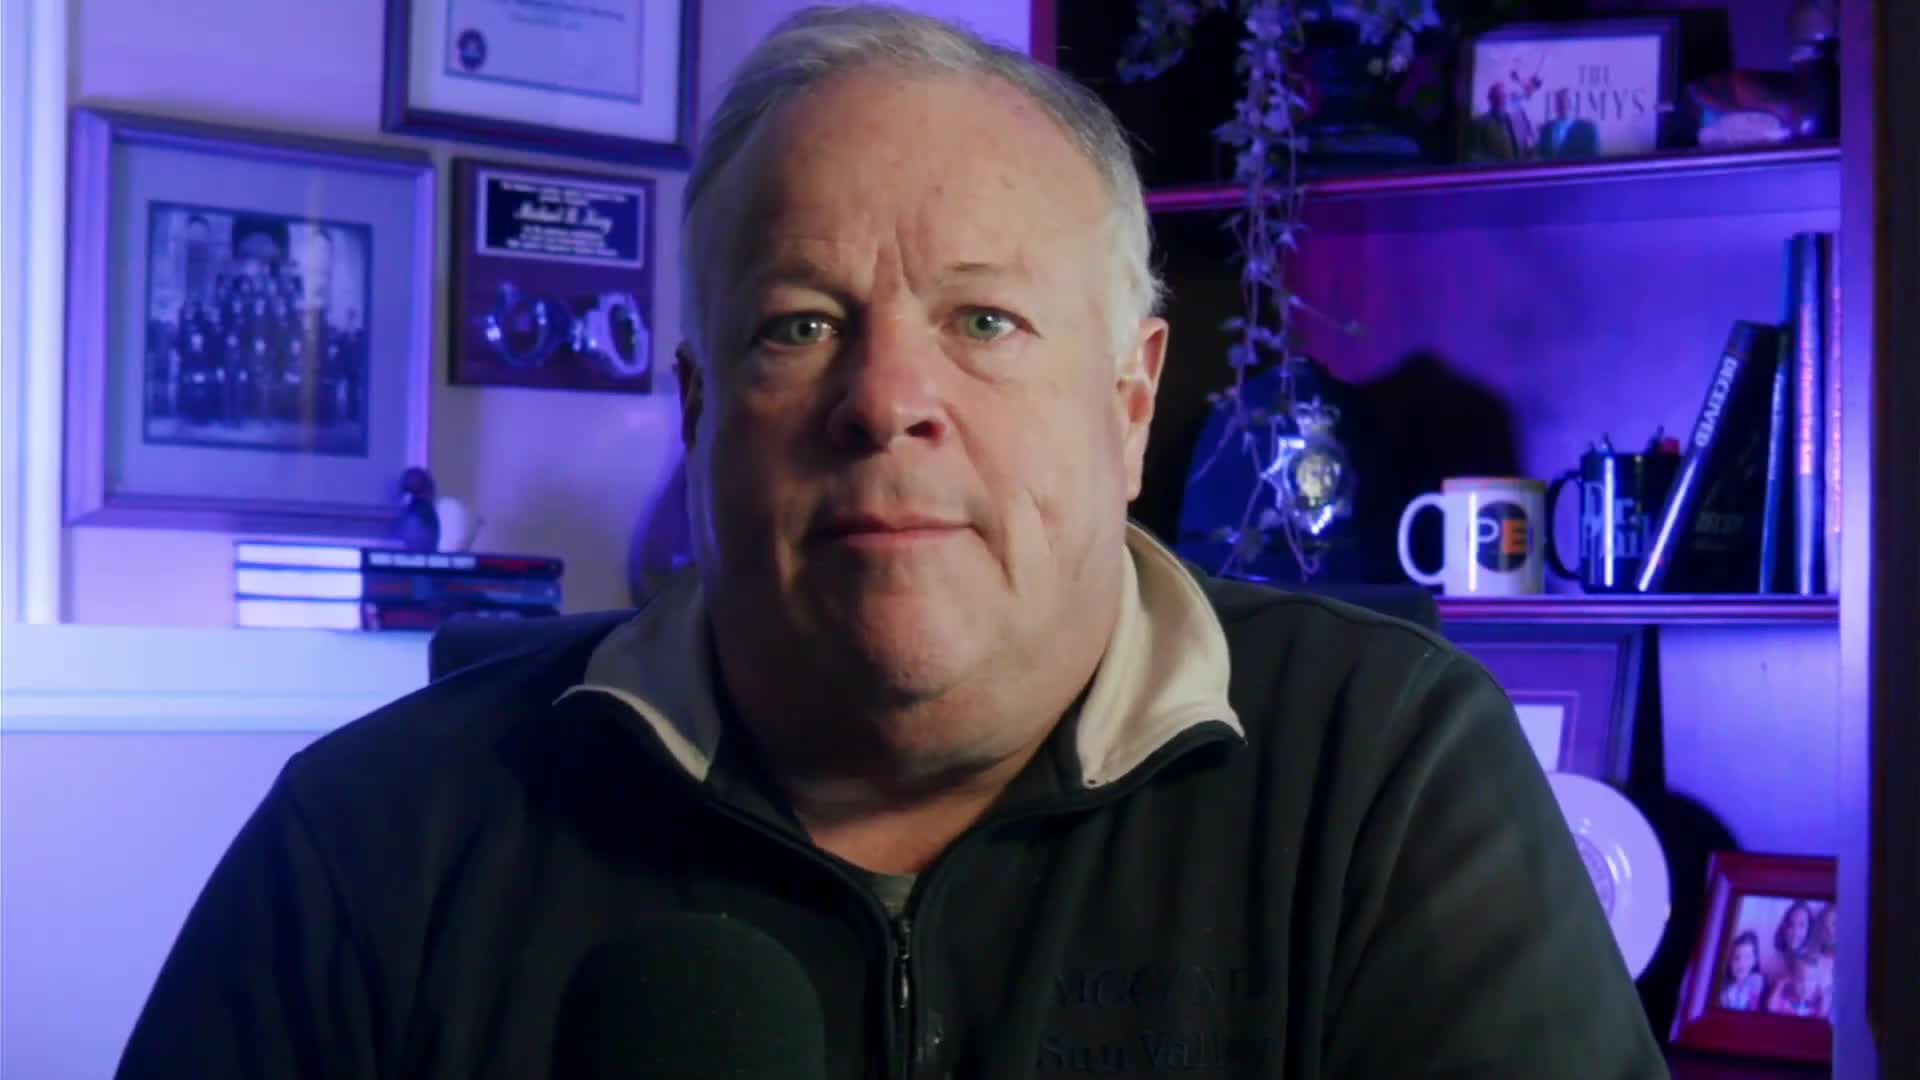 Nashville Suspect Identified: Who is Anthony Warner? THE PUBLIC RECORD by Profiling Evil